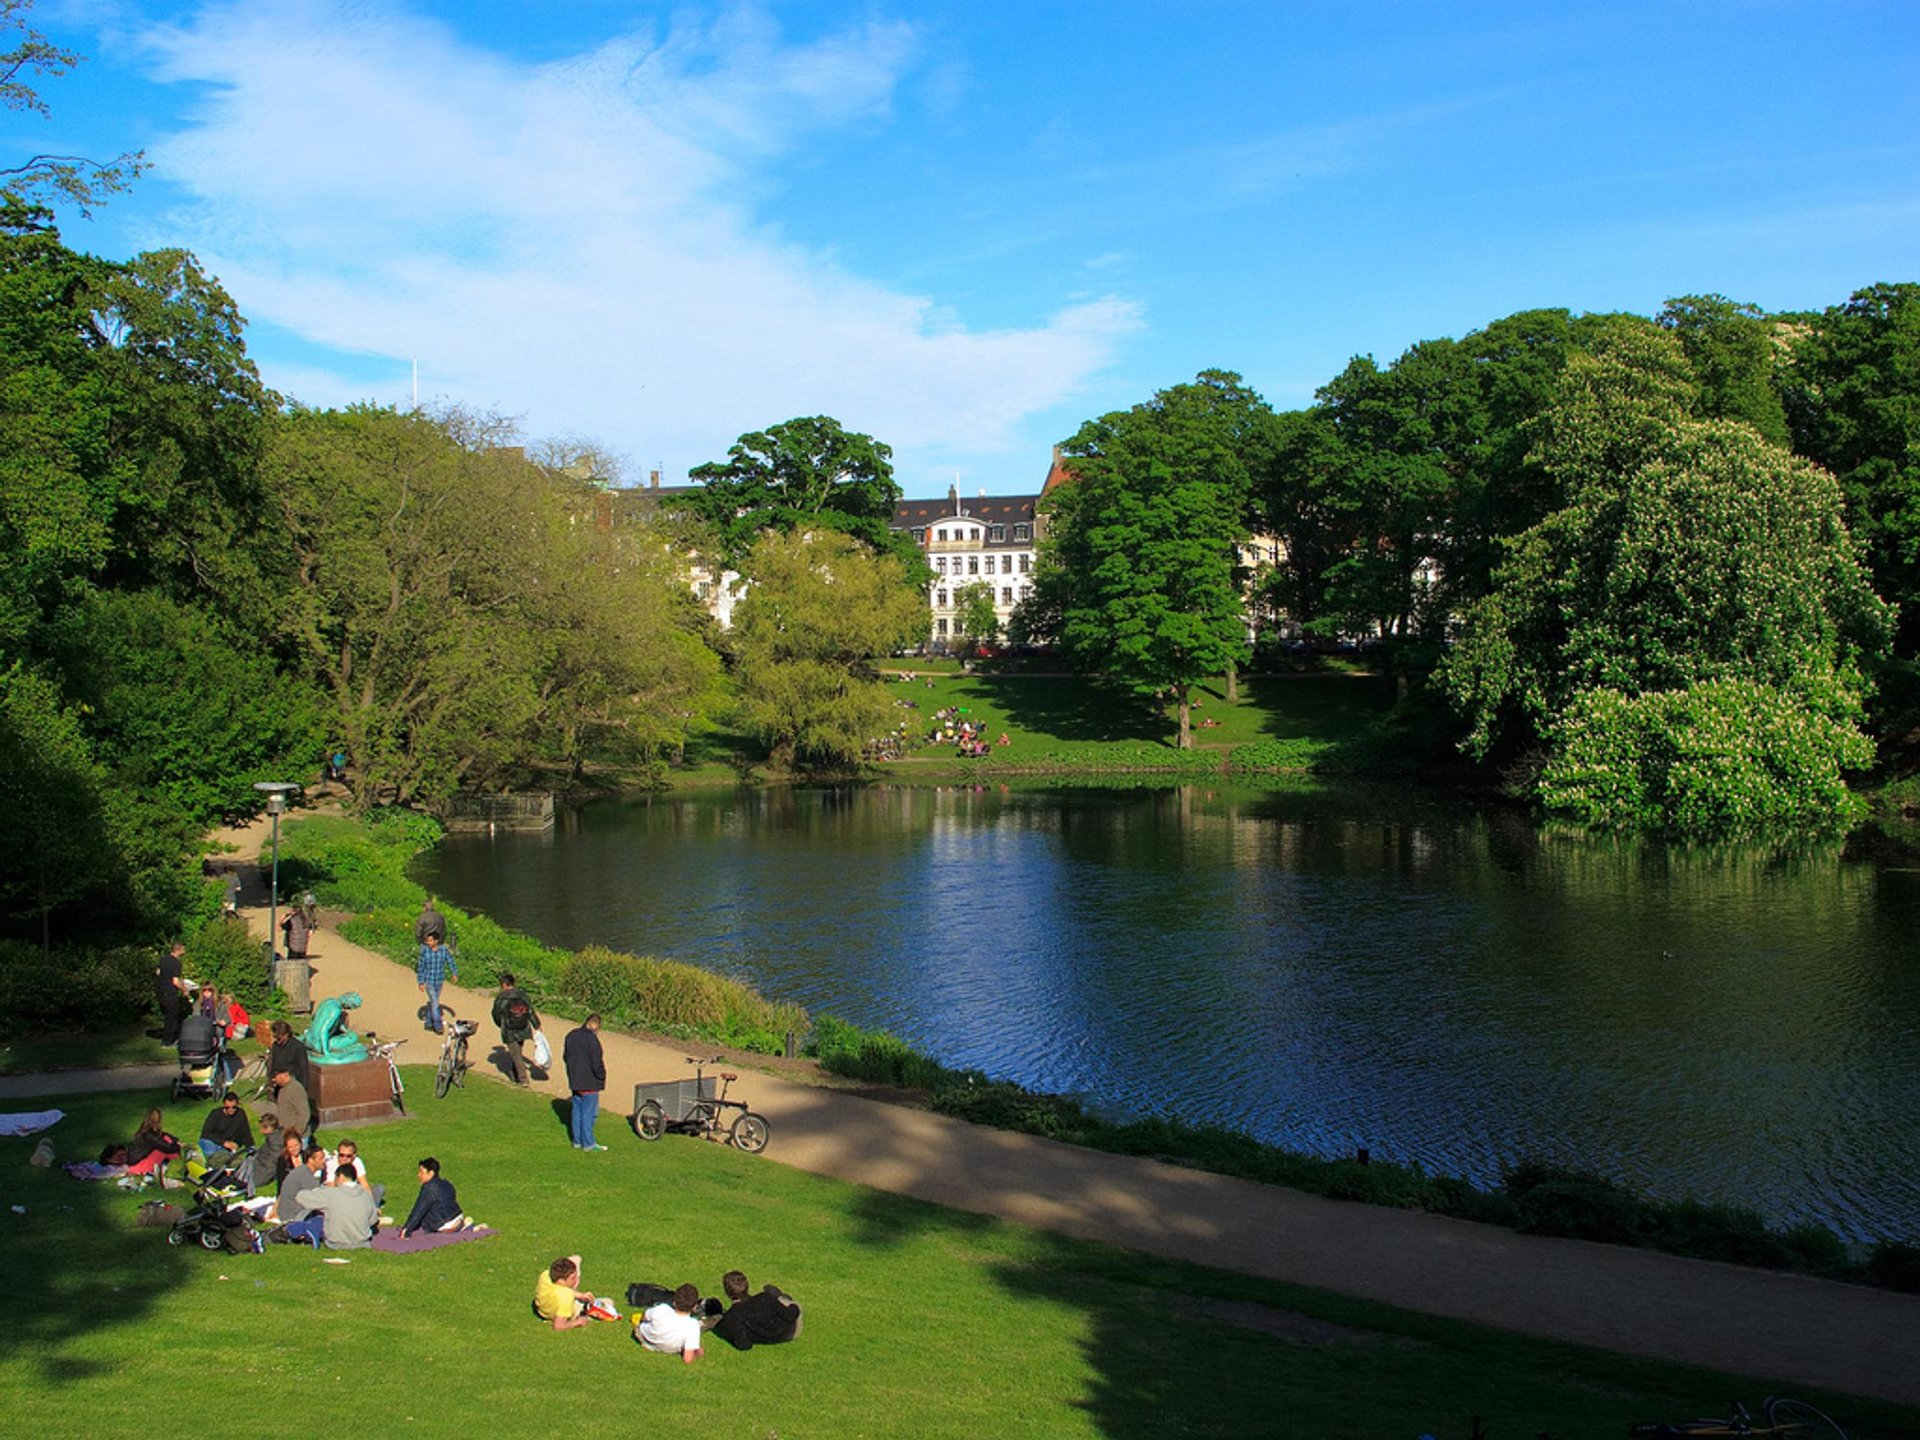 Copenhagen's Parks in Copenhagen 2019 - Best Time